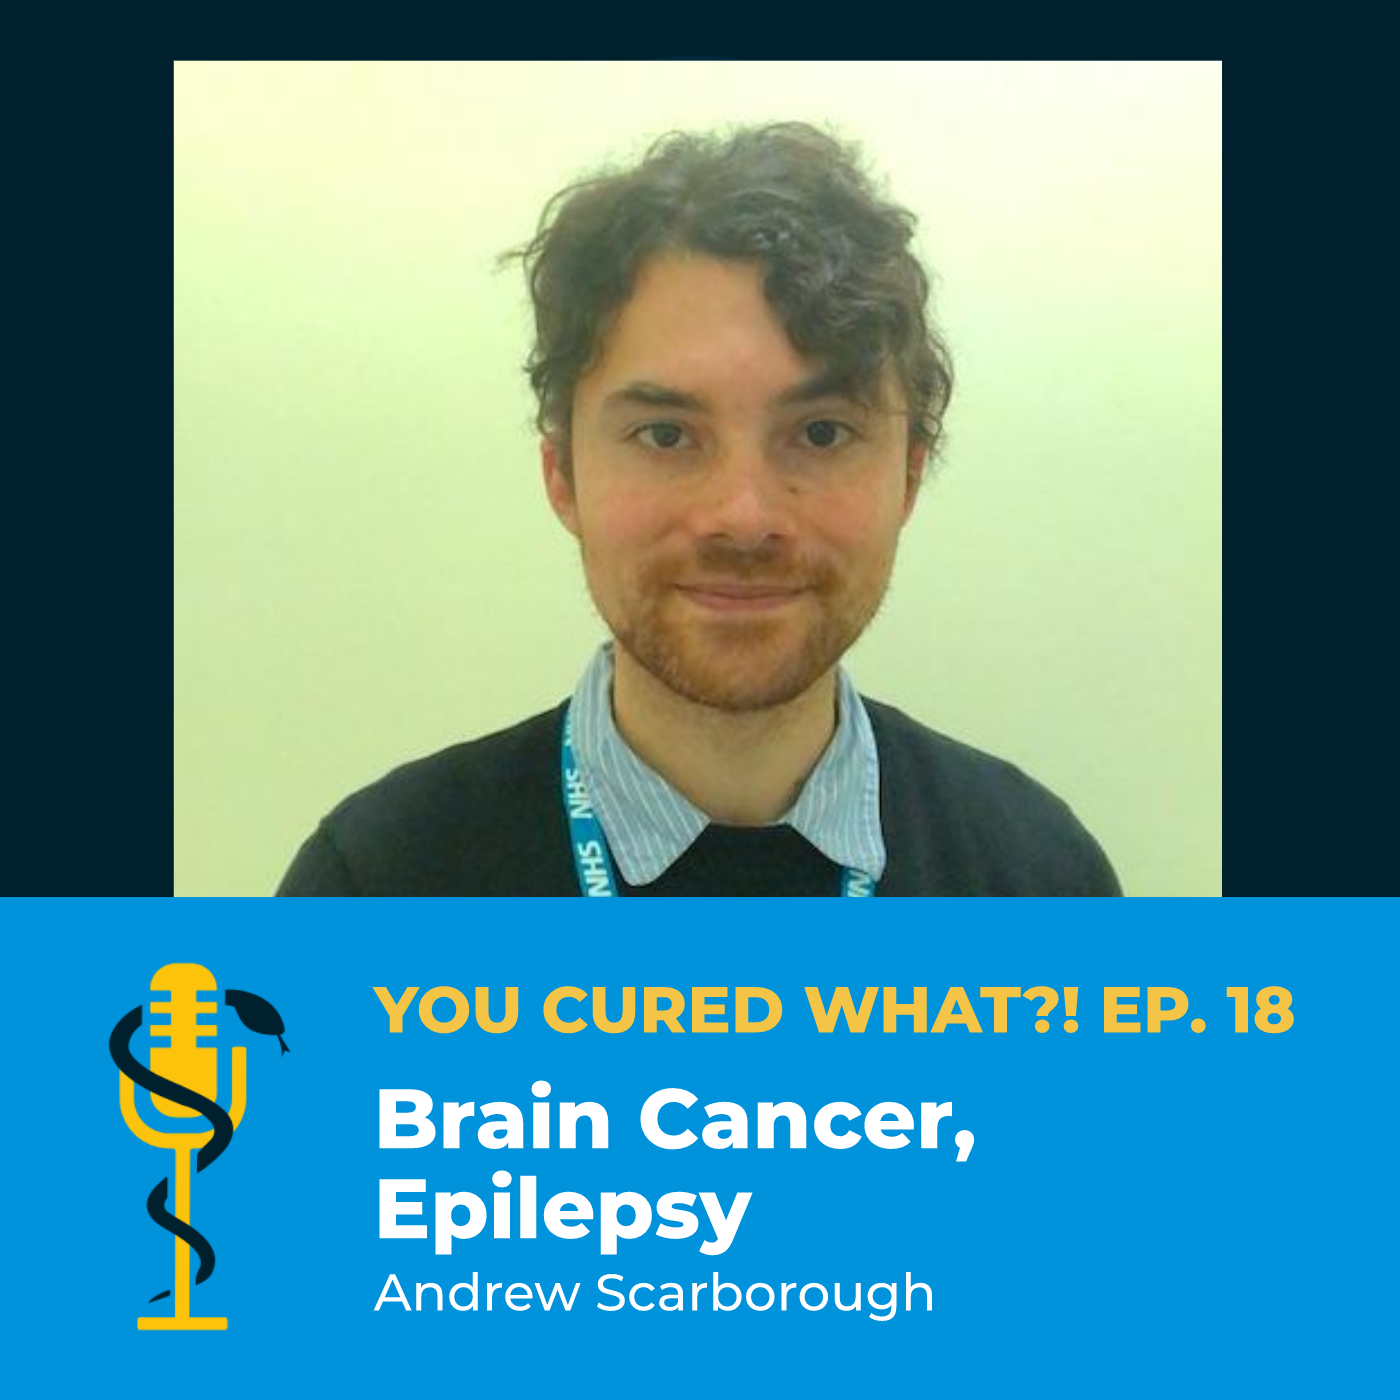 Ep.18: Brain Cancer, Epilepsy with Andrew Scarborough